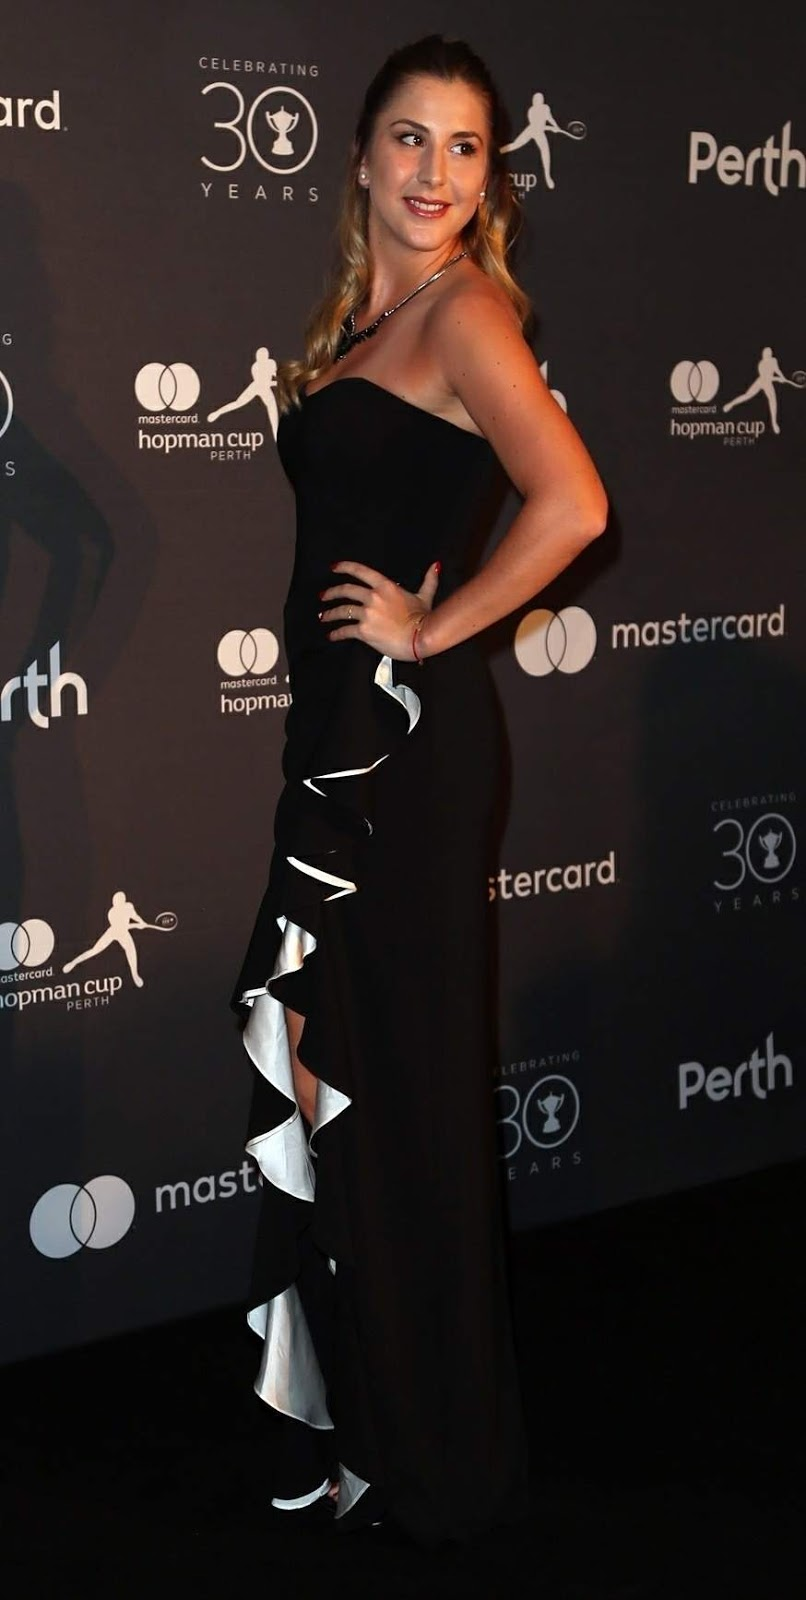 Belinda Bencic Posing at Hopman Cup New Years Eve